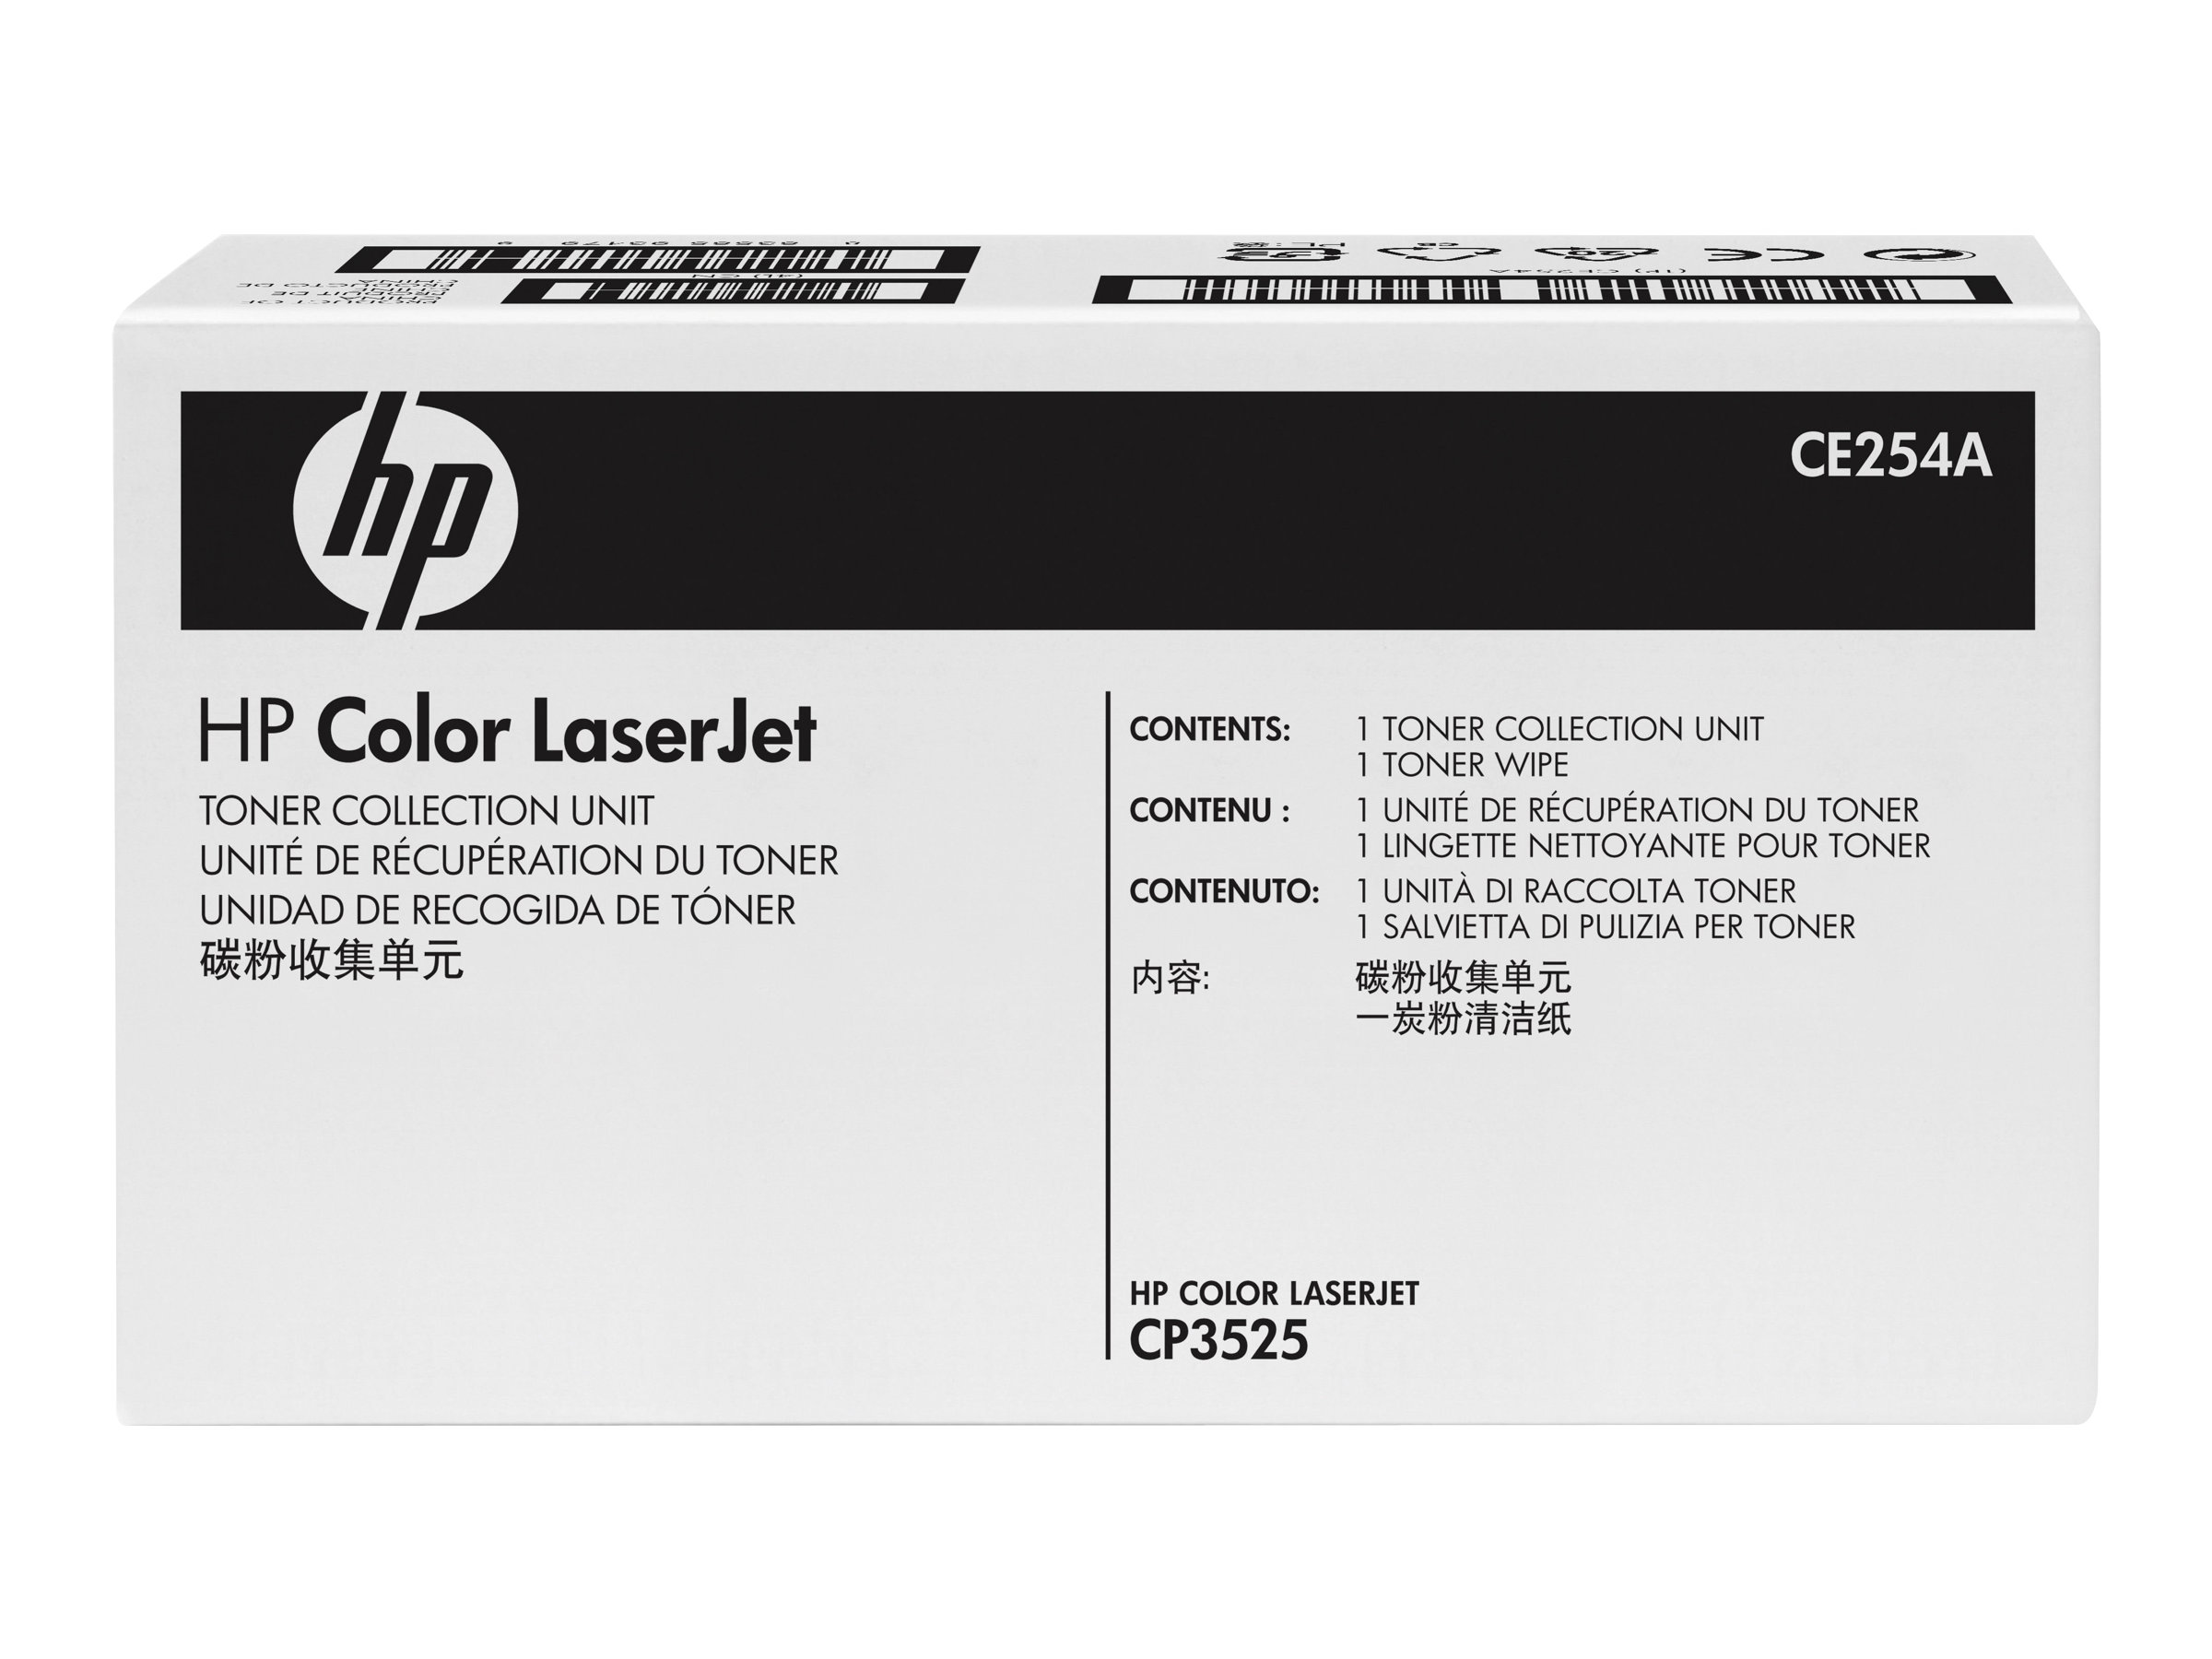 HP - toner collection coil